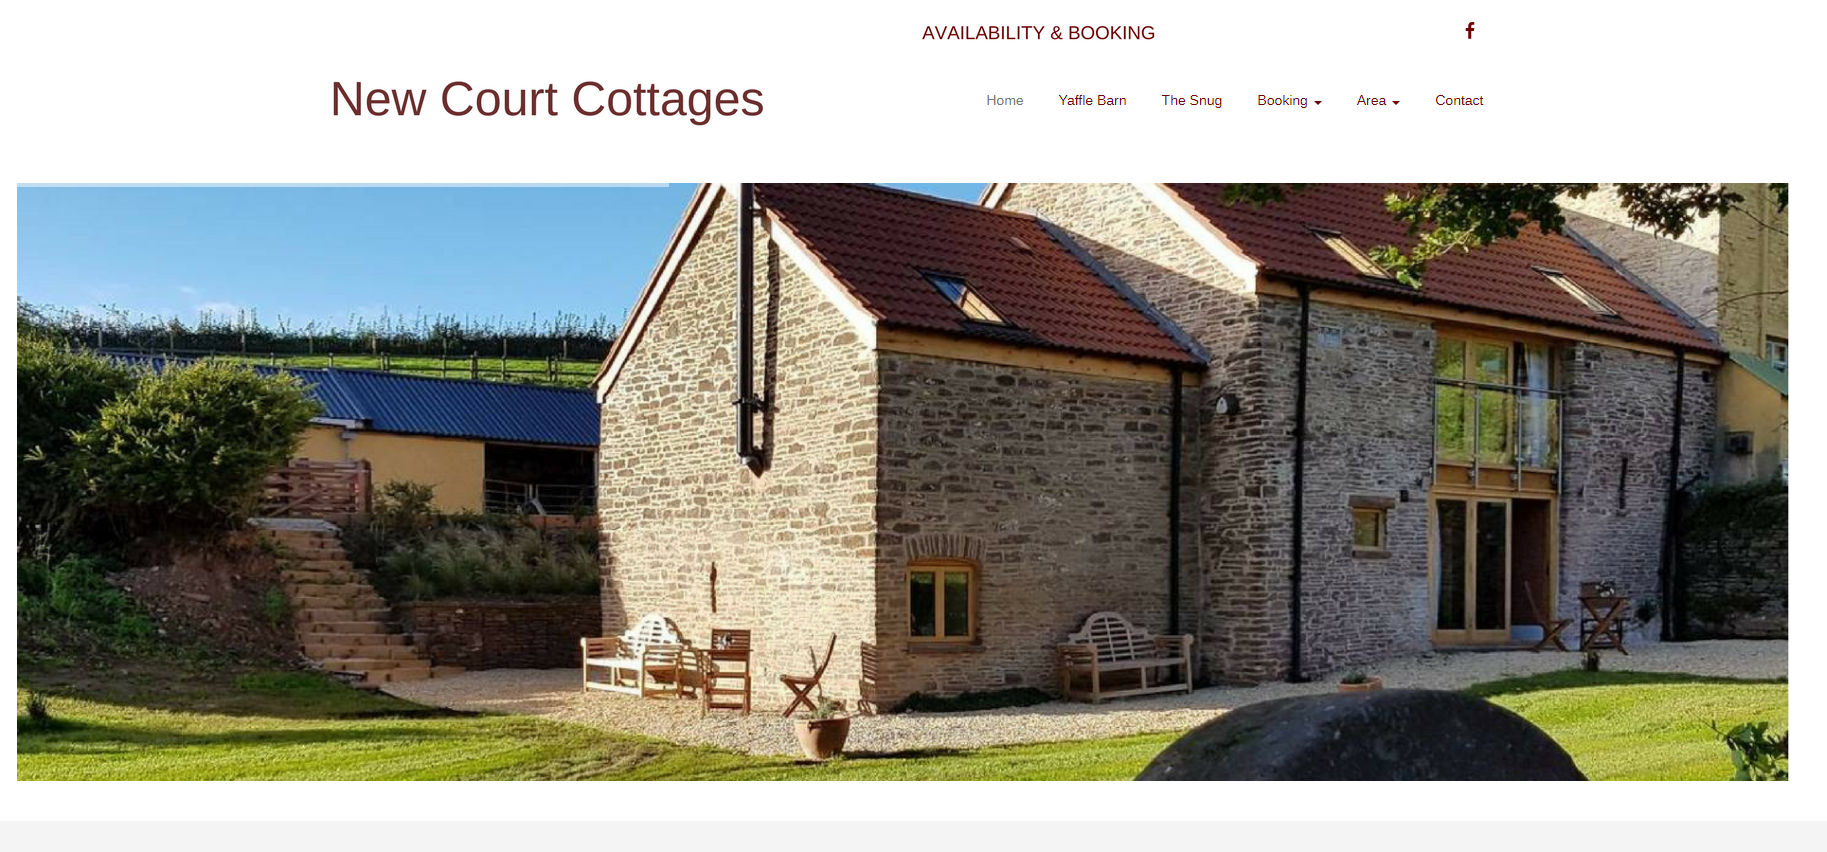 New Court Cottages